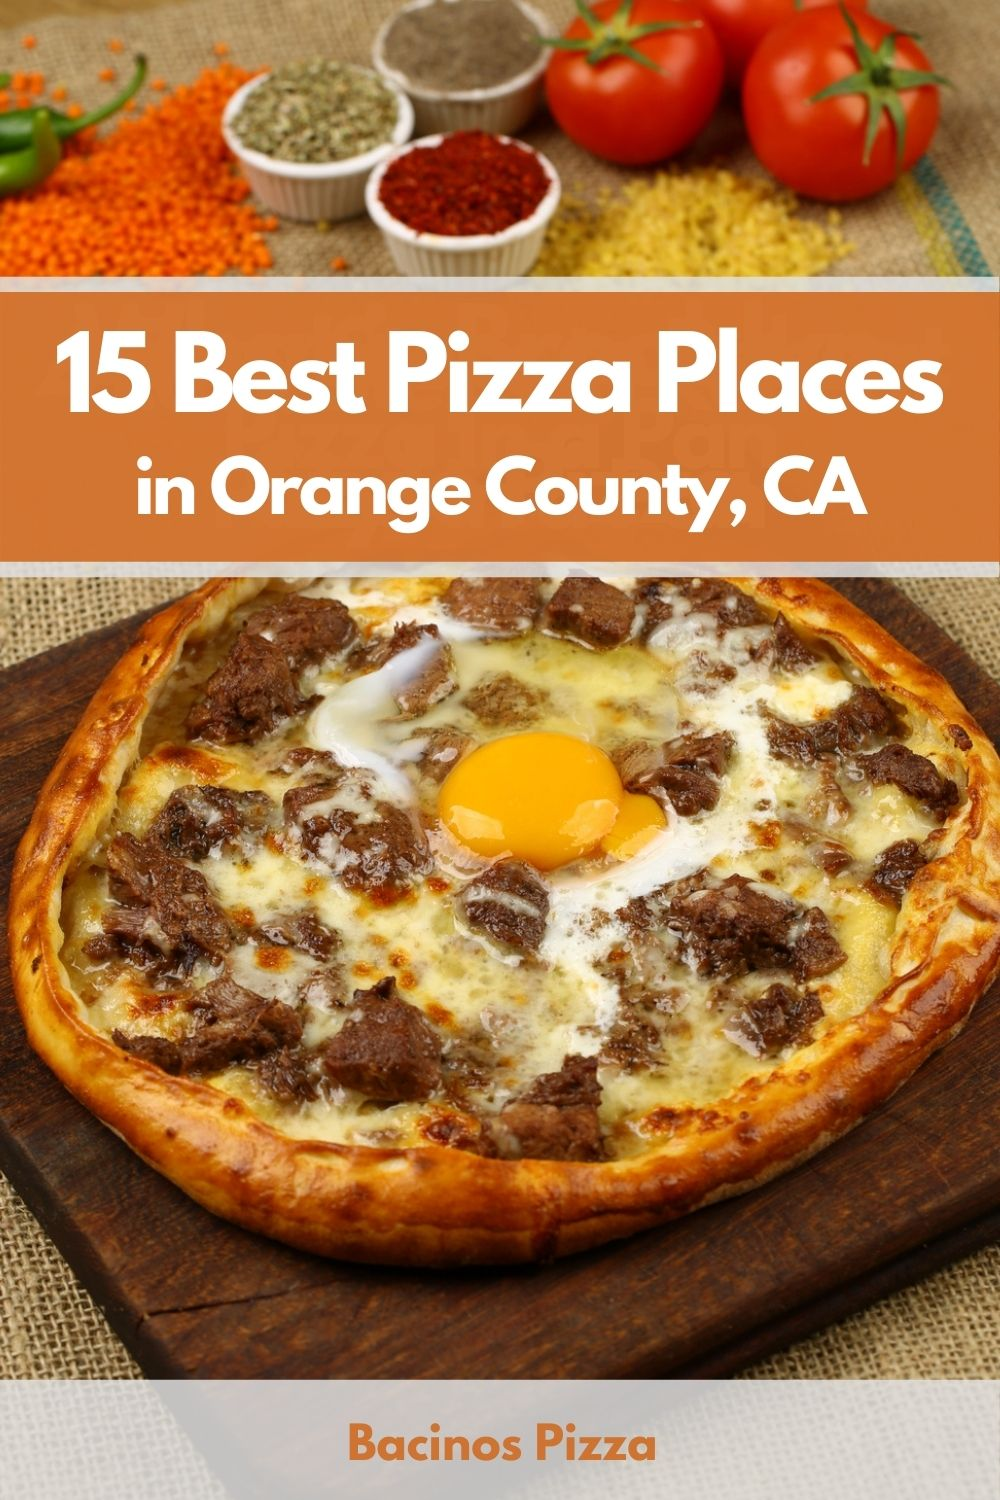 15 Best Pizza Places in Orange County, CA pin 2